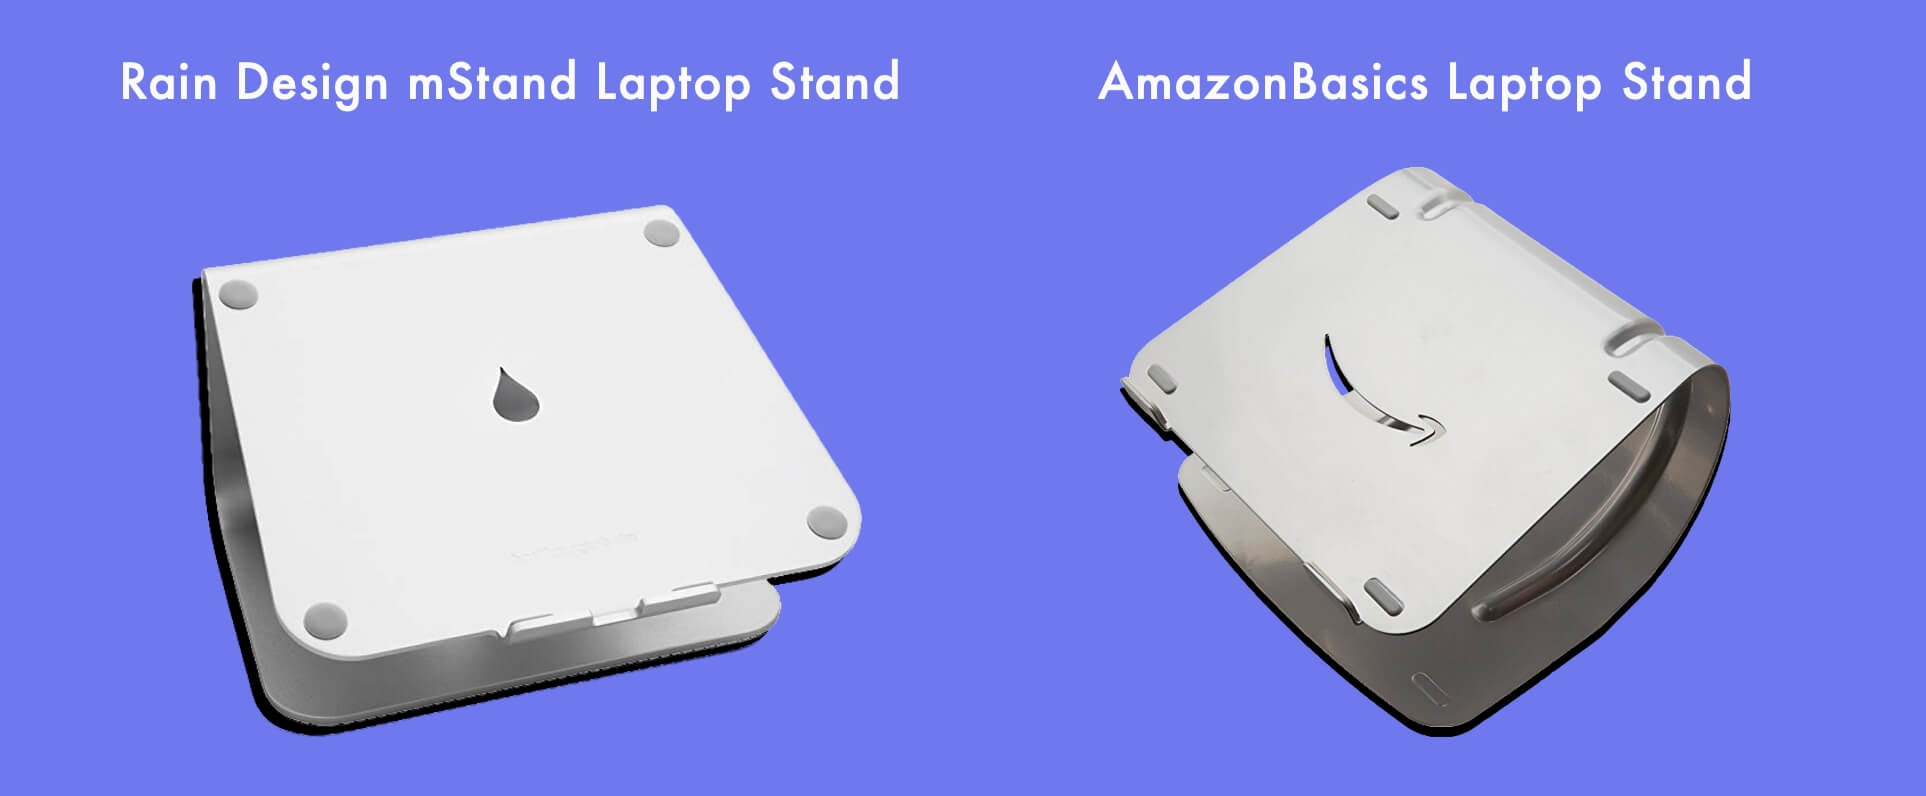 Rain Design mStand Laptop Stand vs AmazonBasics